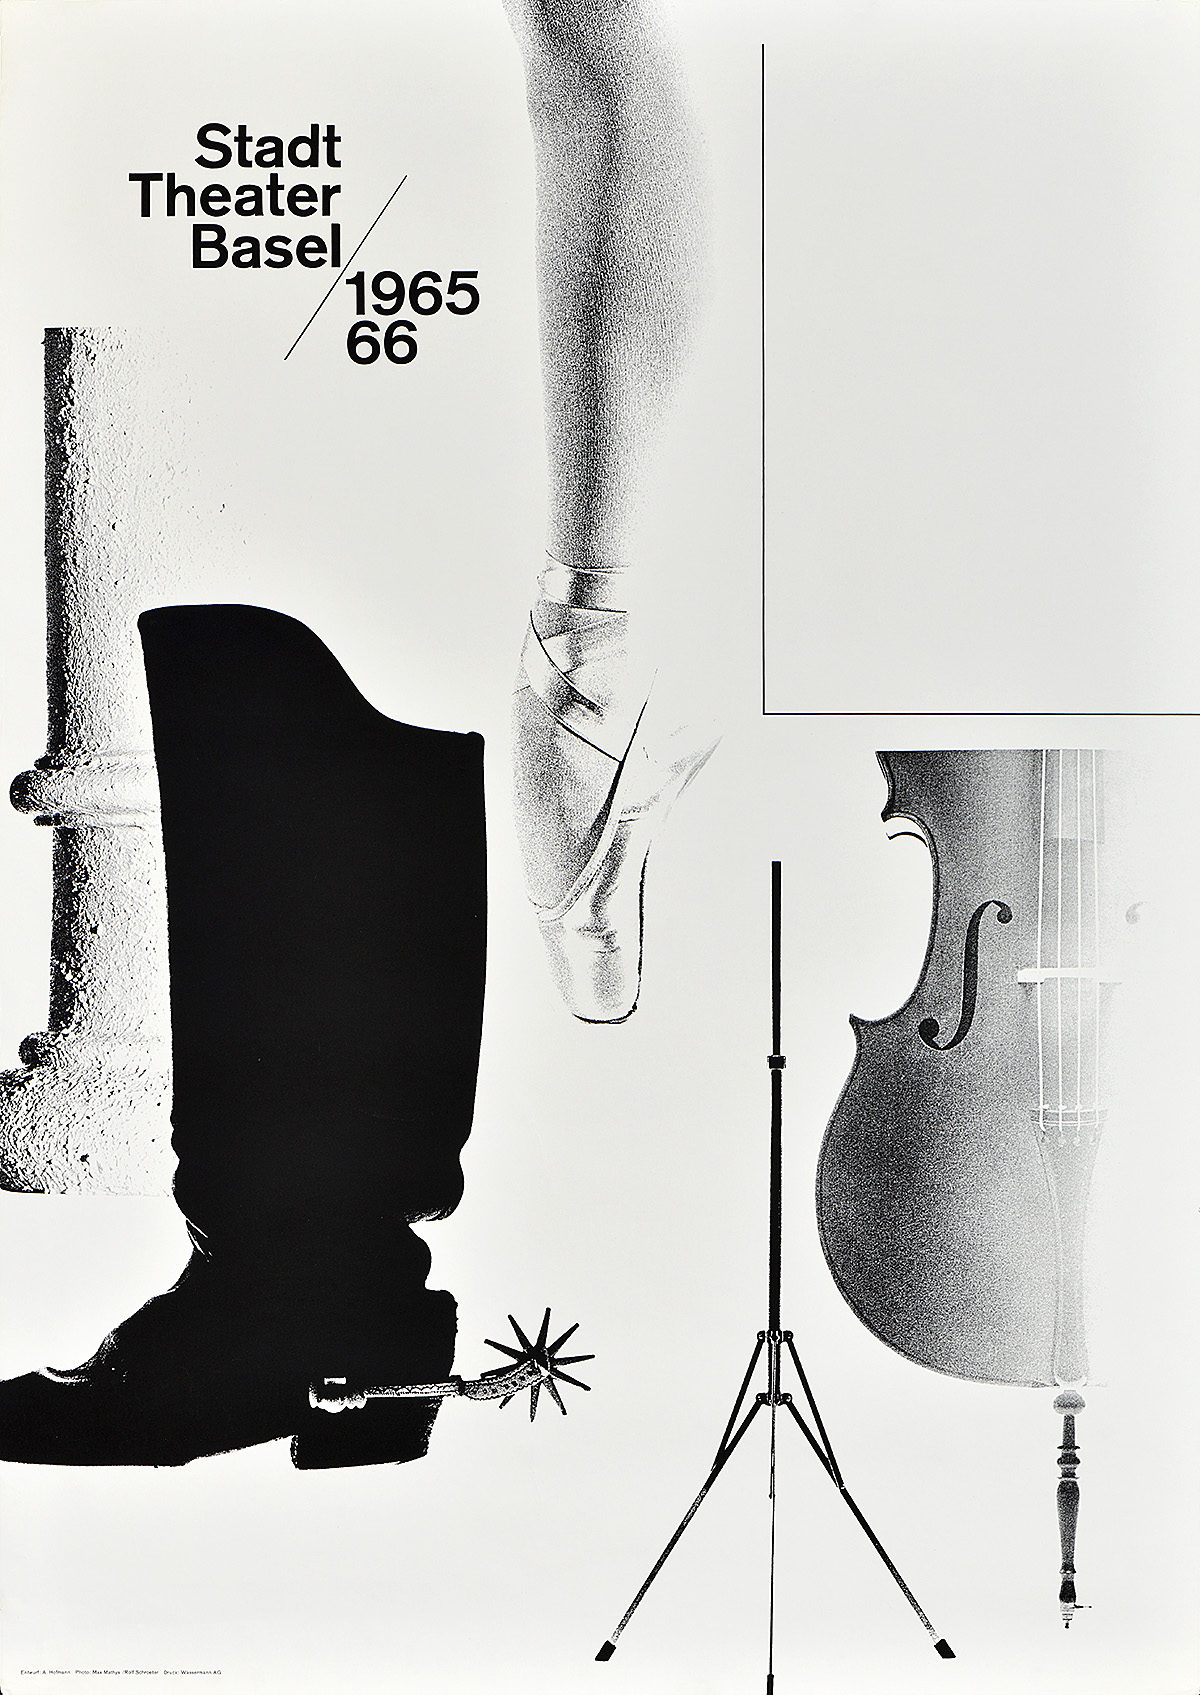 photographic poster of a series of vertical motifs, including a roman column, a cowboy boot, a ballet slipper, a music stand, and a cello